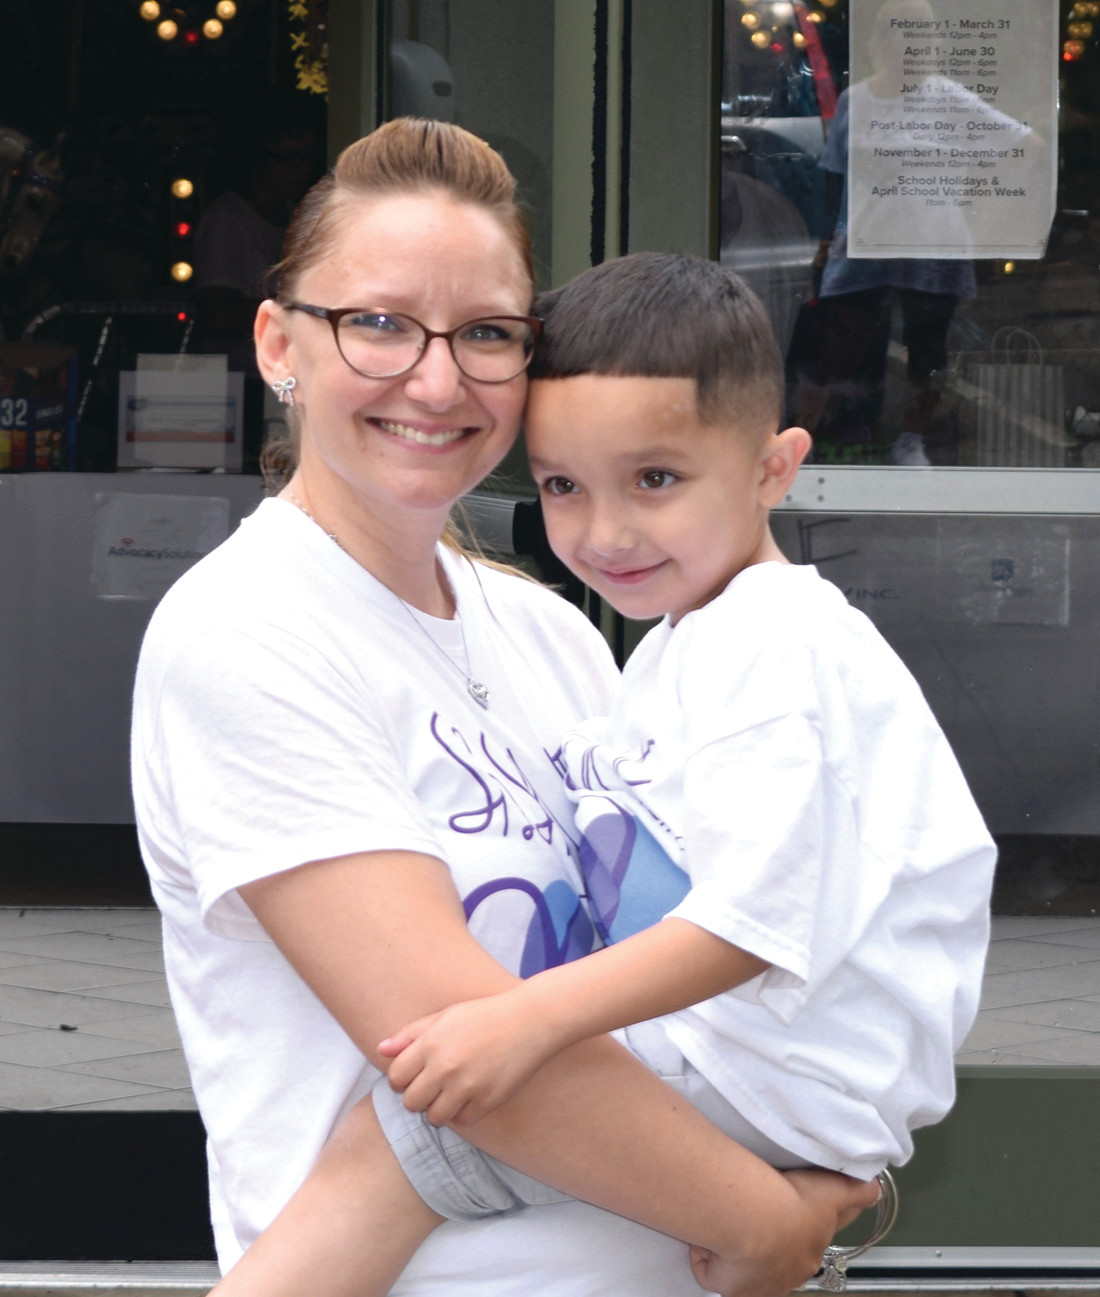 PROUD MOTHER: Nicole White and her son Kyrie were photographed last summer at the first ever Short Bowel Syndrome Foundation for Children of New England 5k, which she helped to organize and was held at Roger Williams Park.